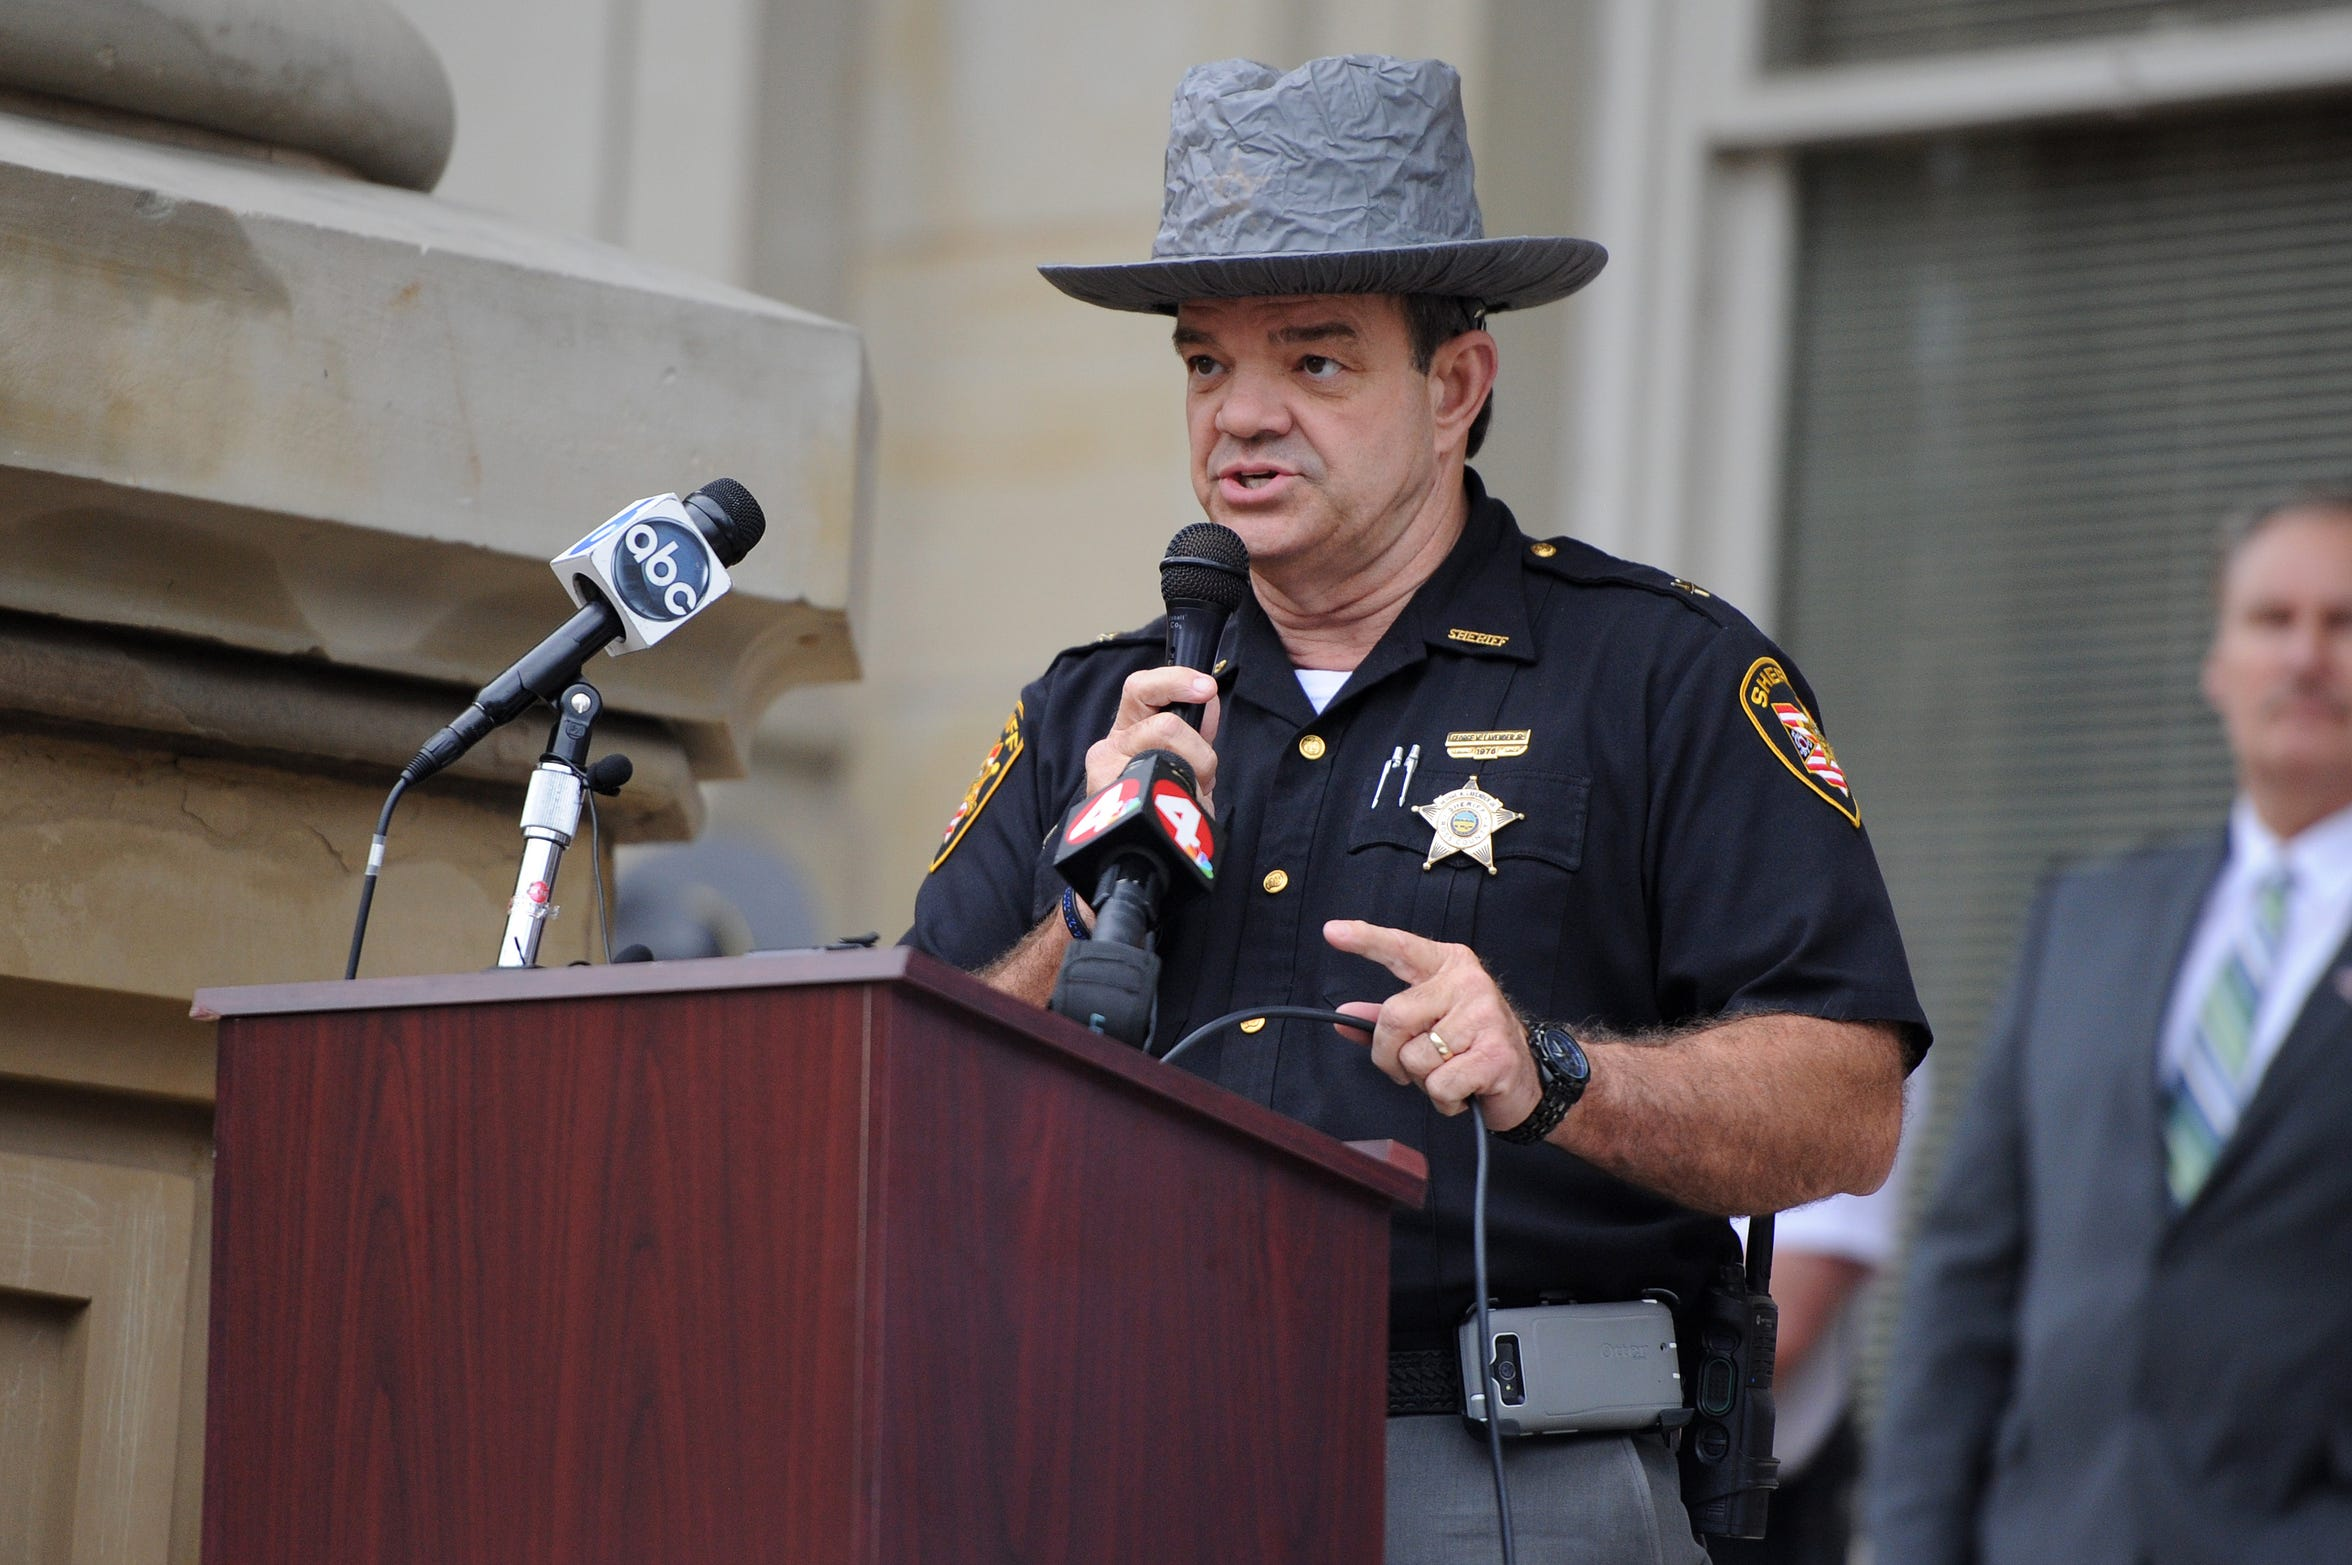 Ross County Sheriff George Lavender speaks during a 2015 rally where officials spoke about initiatives to make Chillicothe safer, to plea for people with information about the missing and murdered women to come forward and finally to march through the streets to raise community awareness.